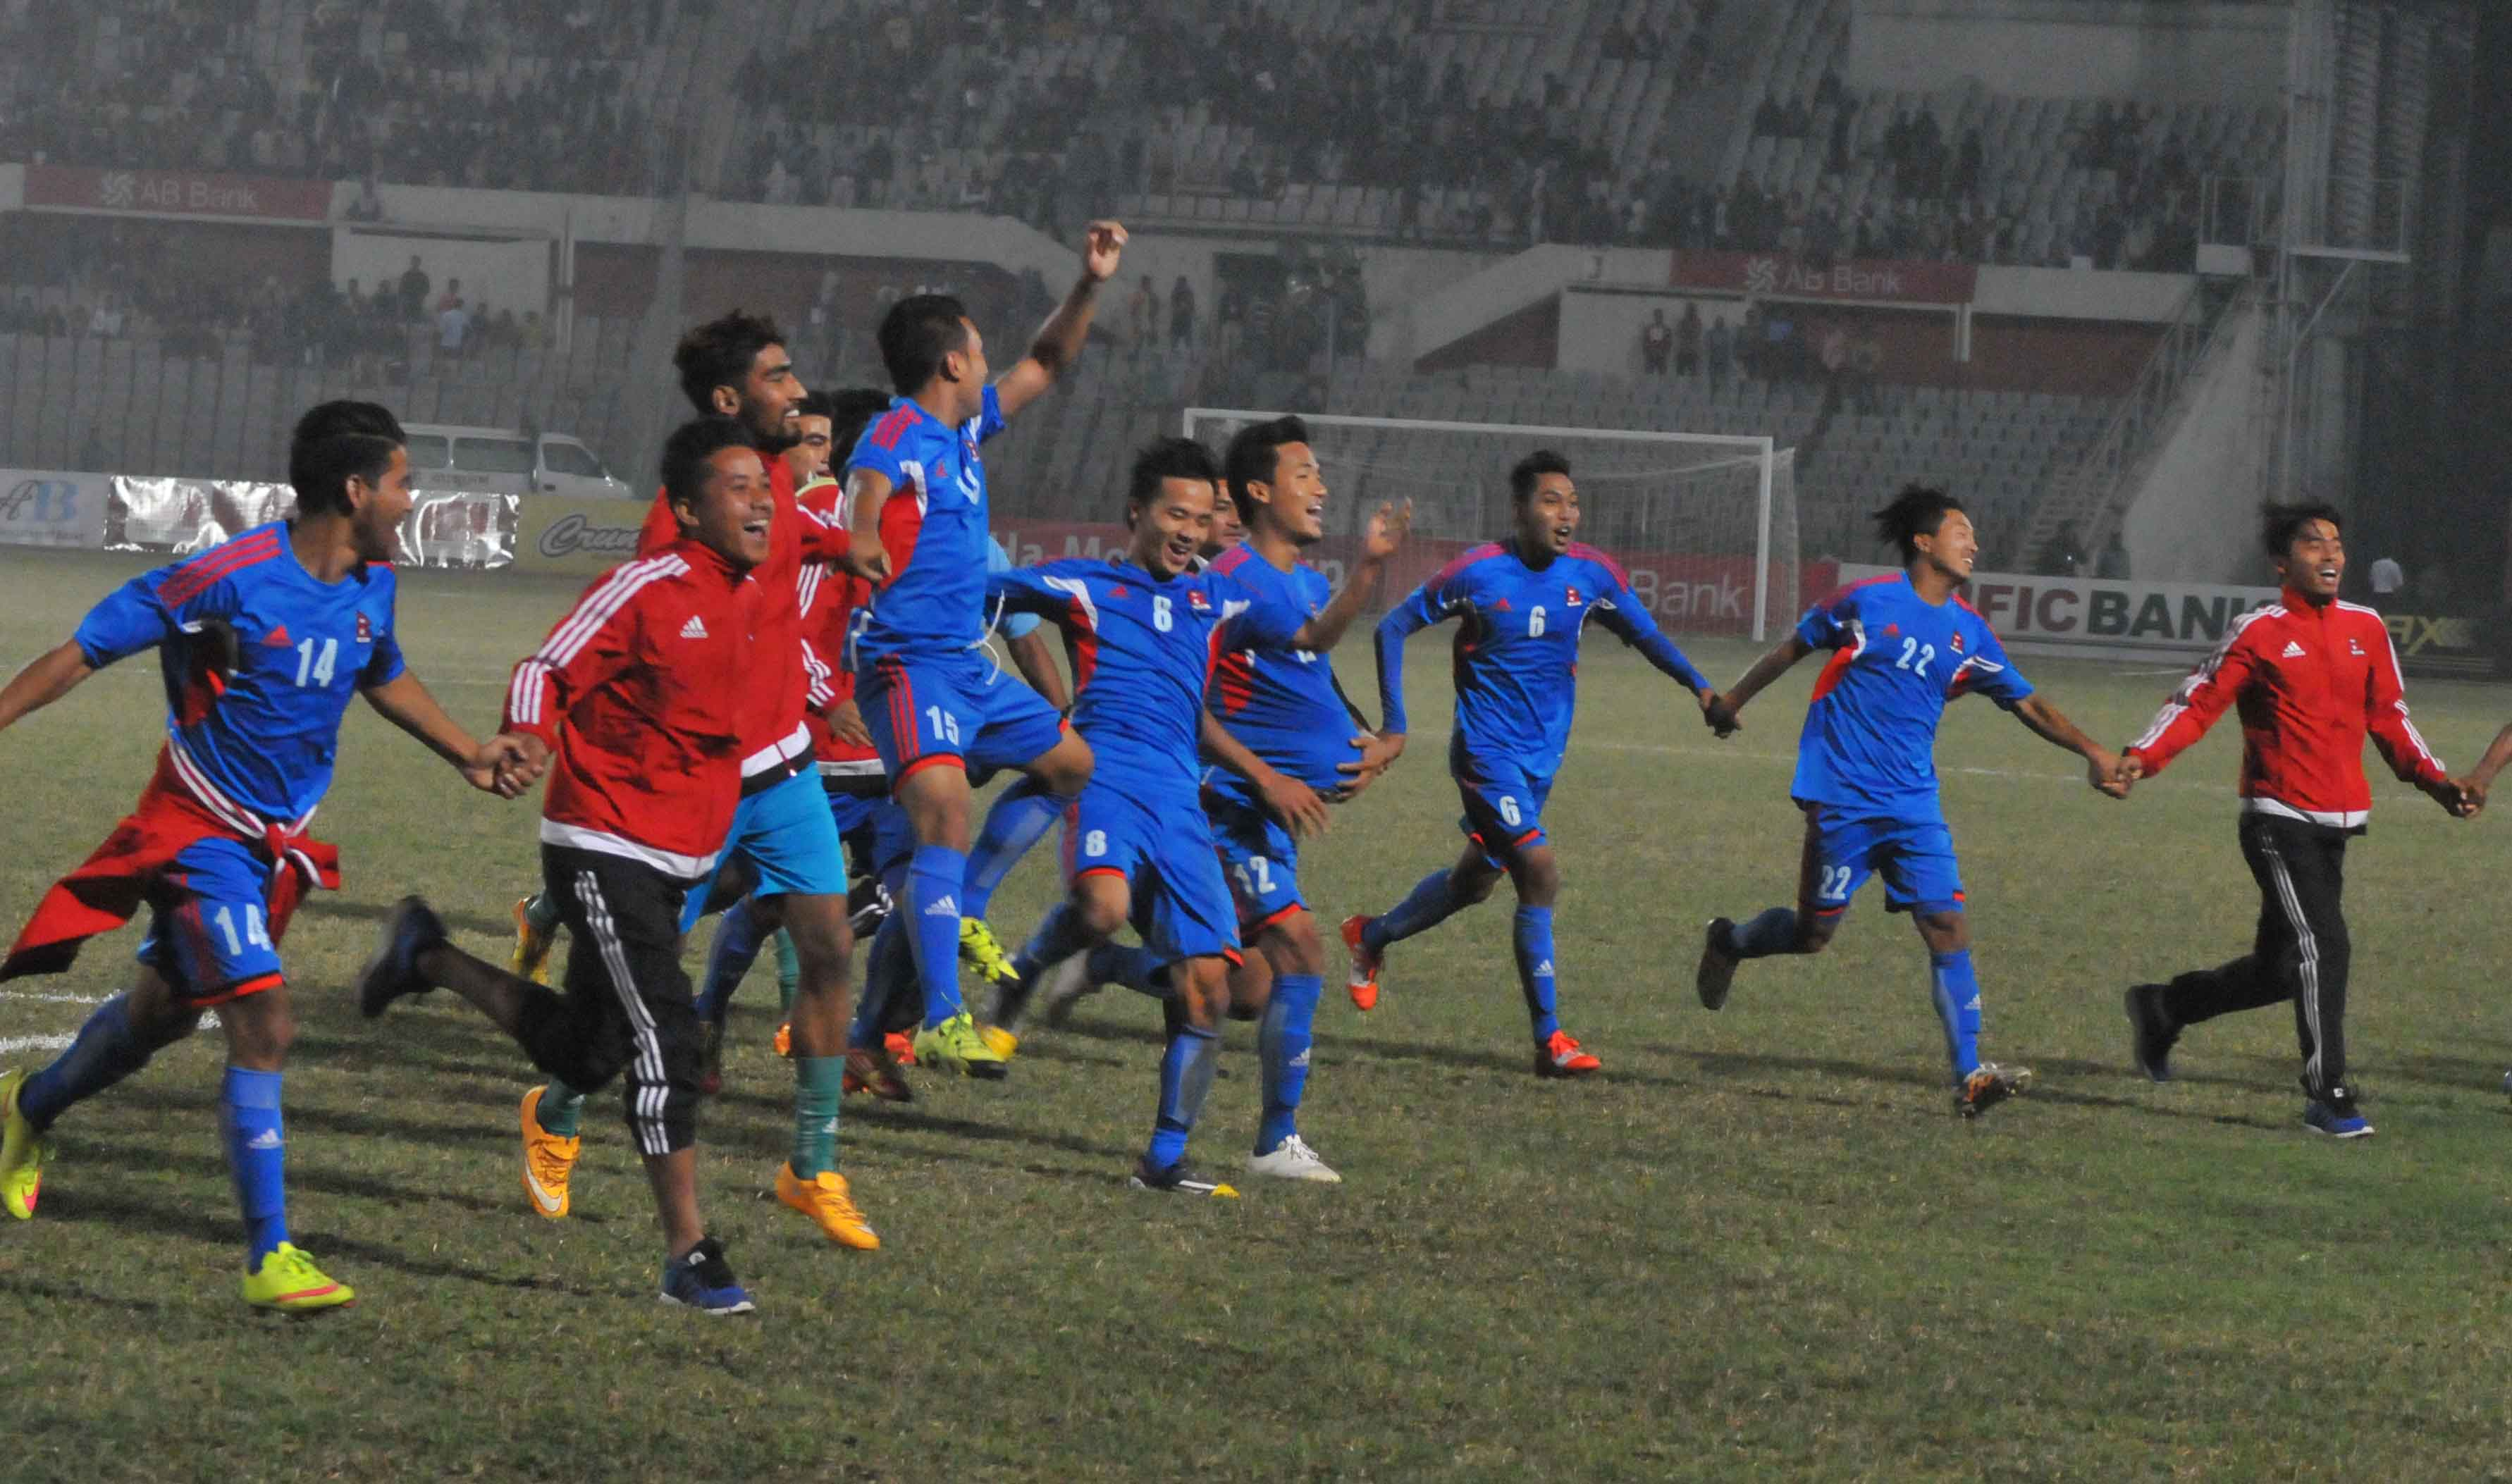 Nepal(Blue)  Vs  Bahrain(Red)Final Match 8